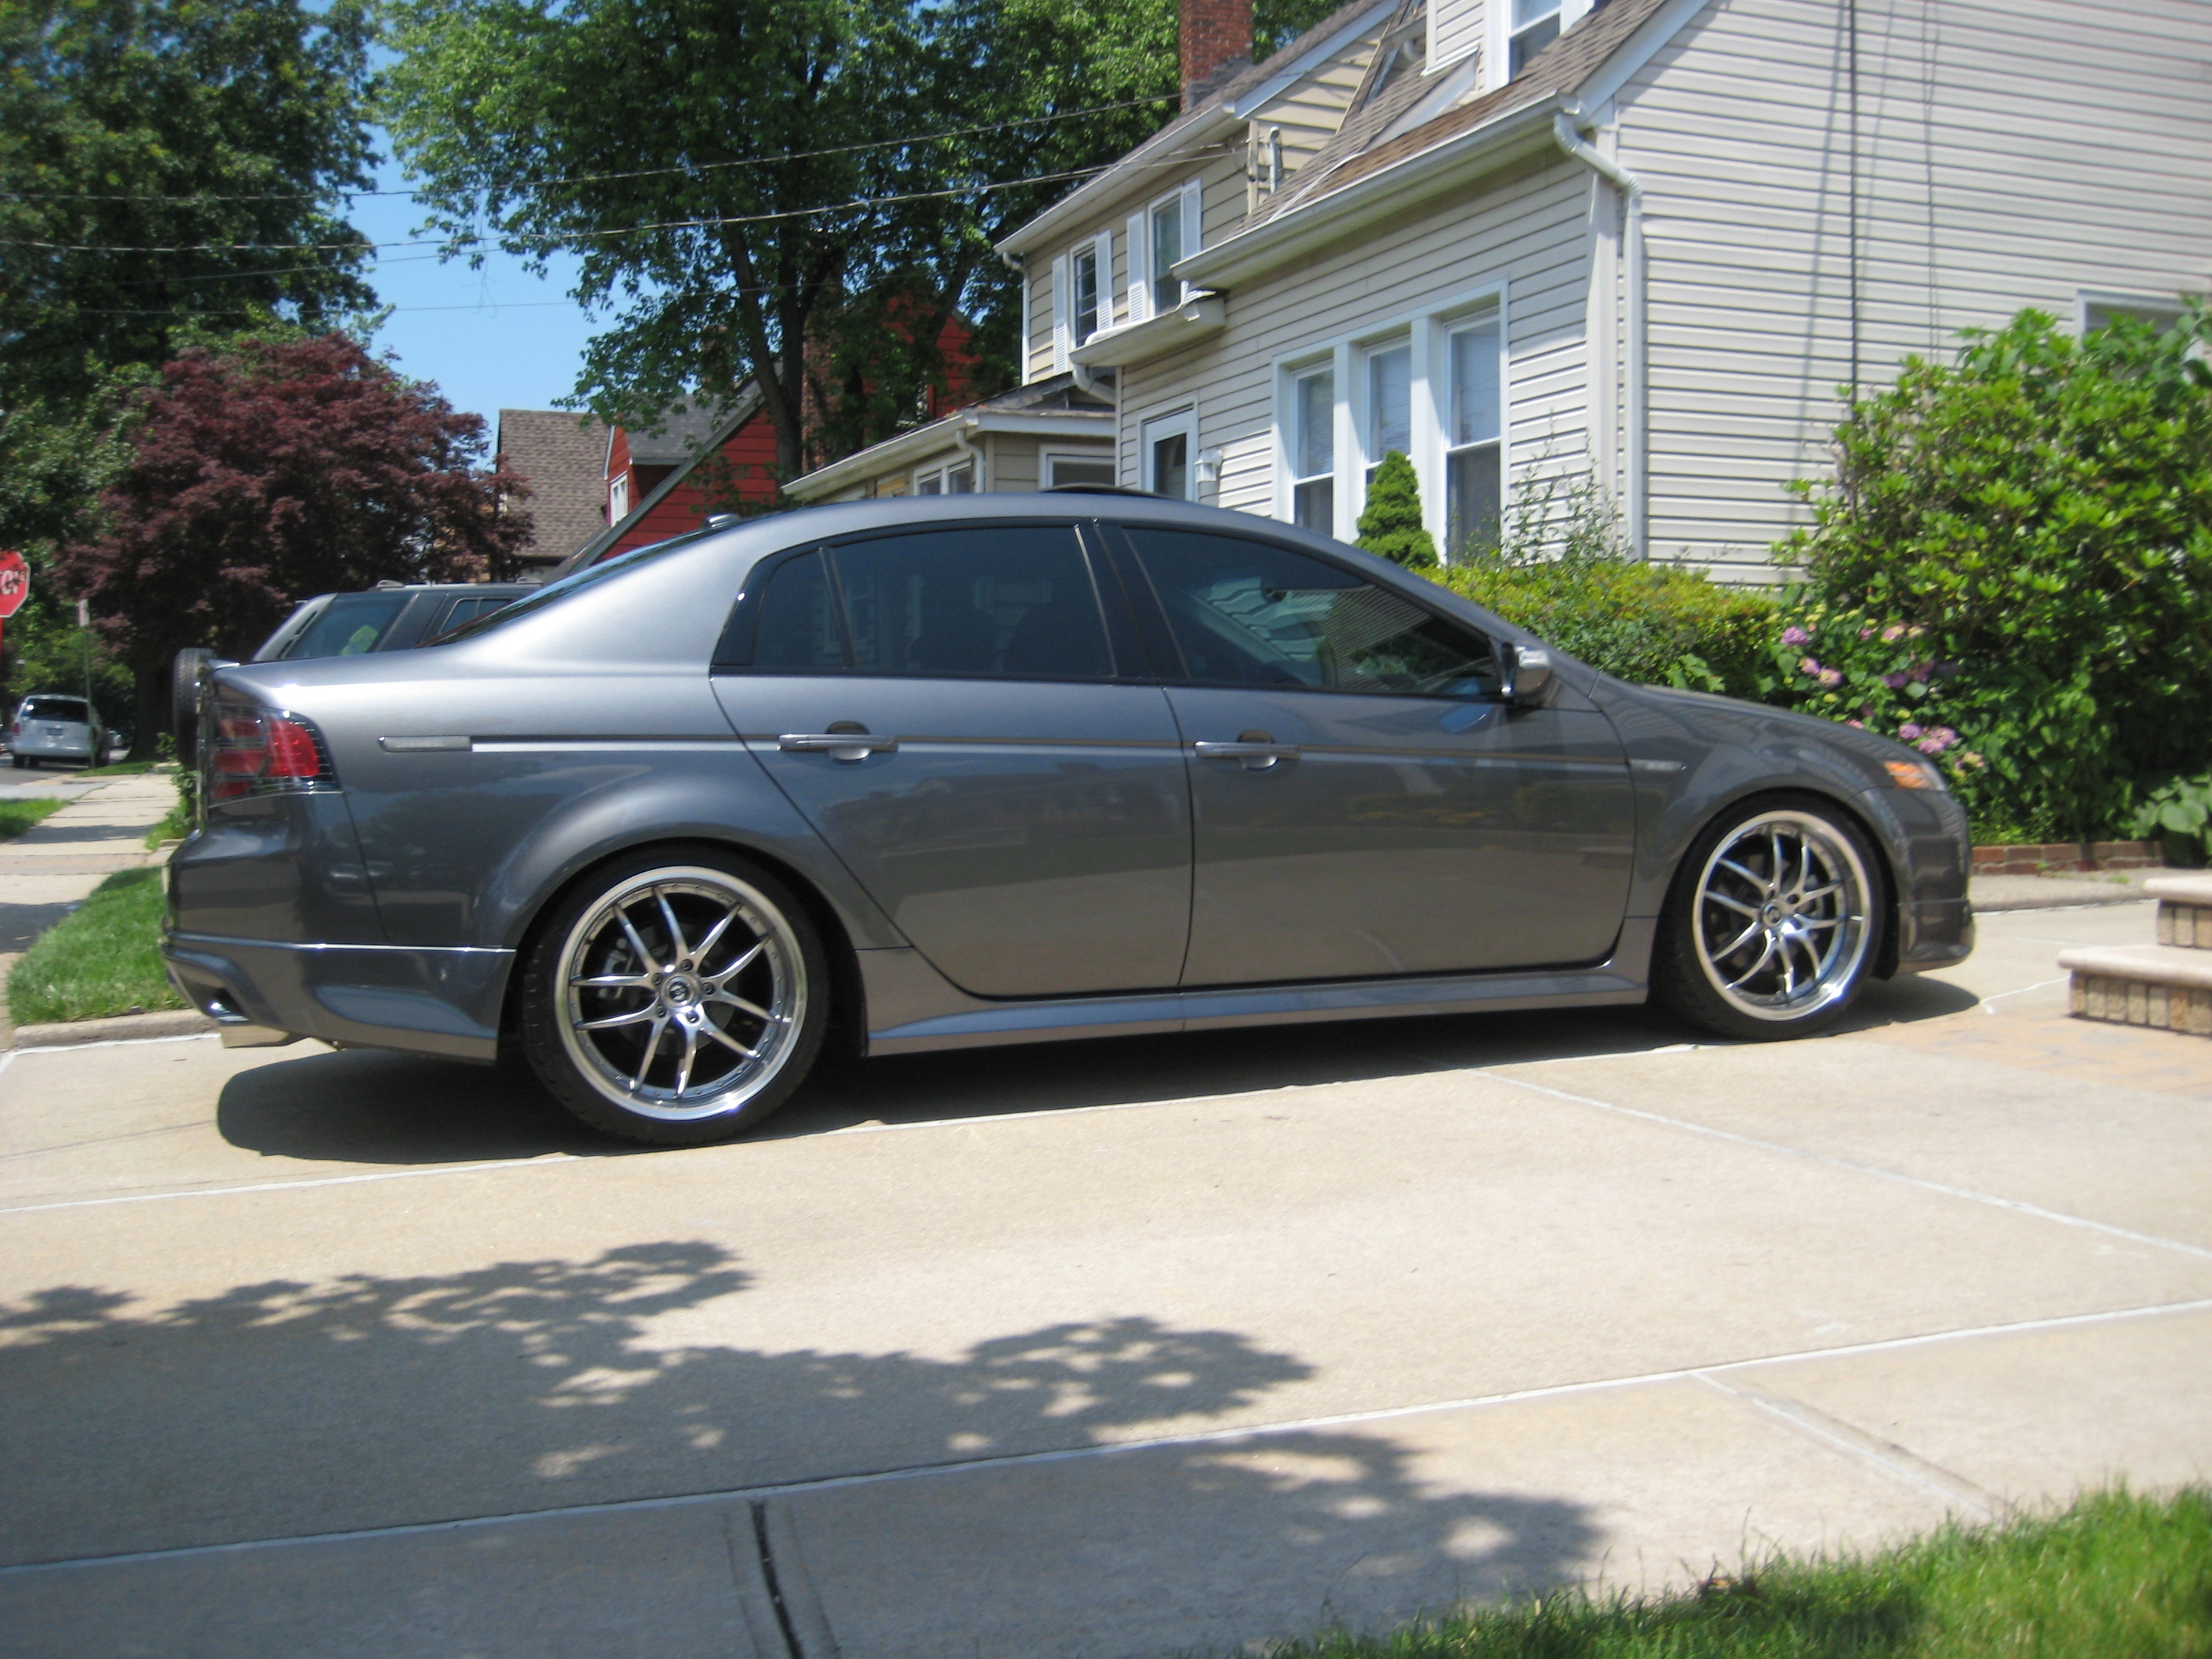 word final synonyms chapter s tl on jdm custom keyword type tribute as the youtube antonyms and acura well of list wheels